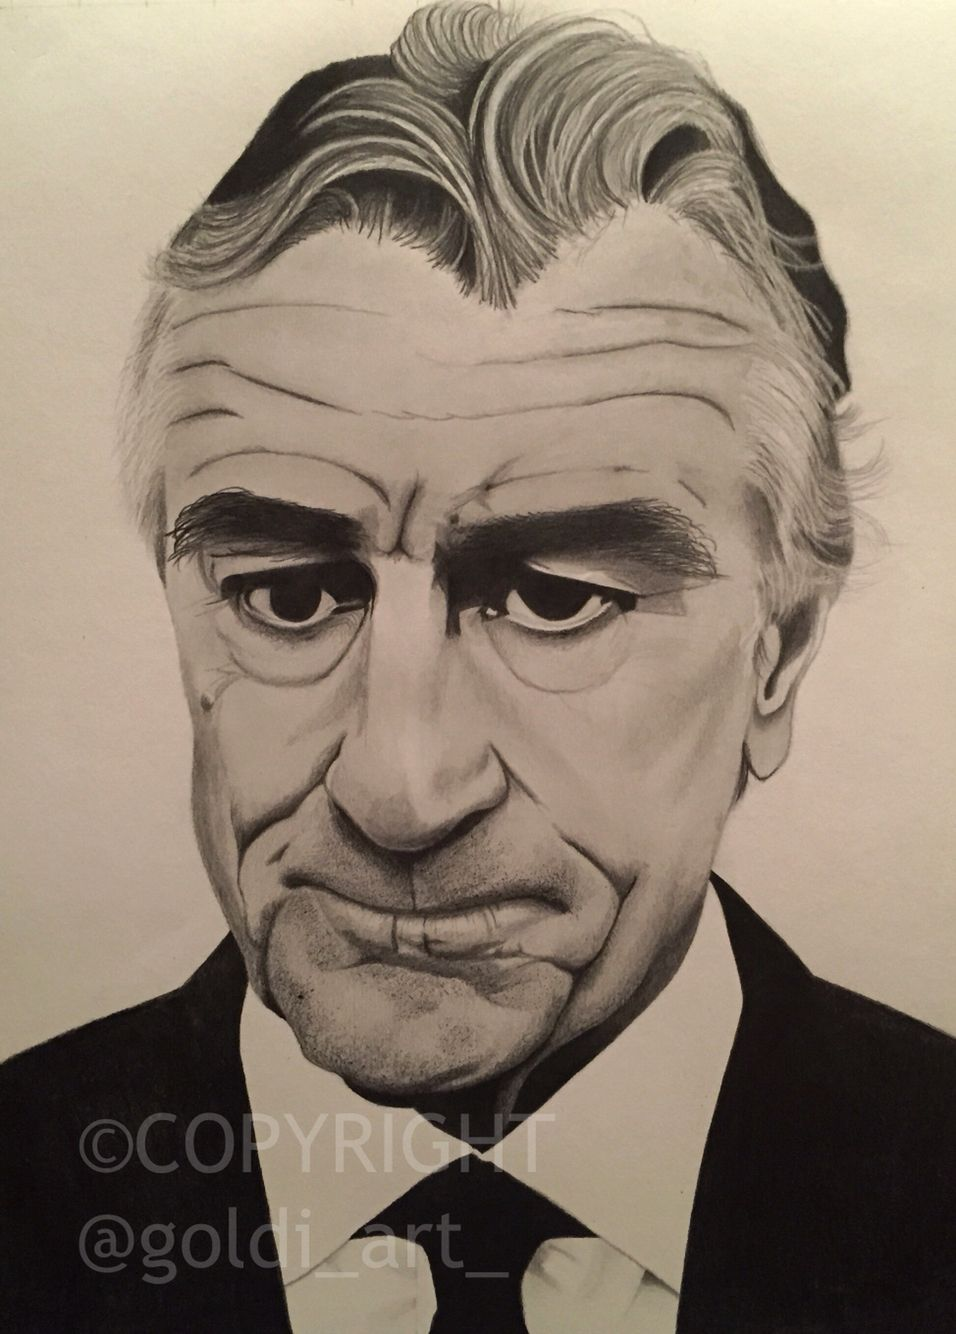 DeNiro Graphite on Artec stock 210gsm Faber Castell 9000 series B, 2B, 5B Available for sale..please contact me via P/Msg for details